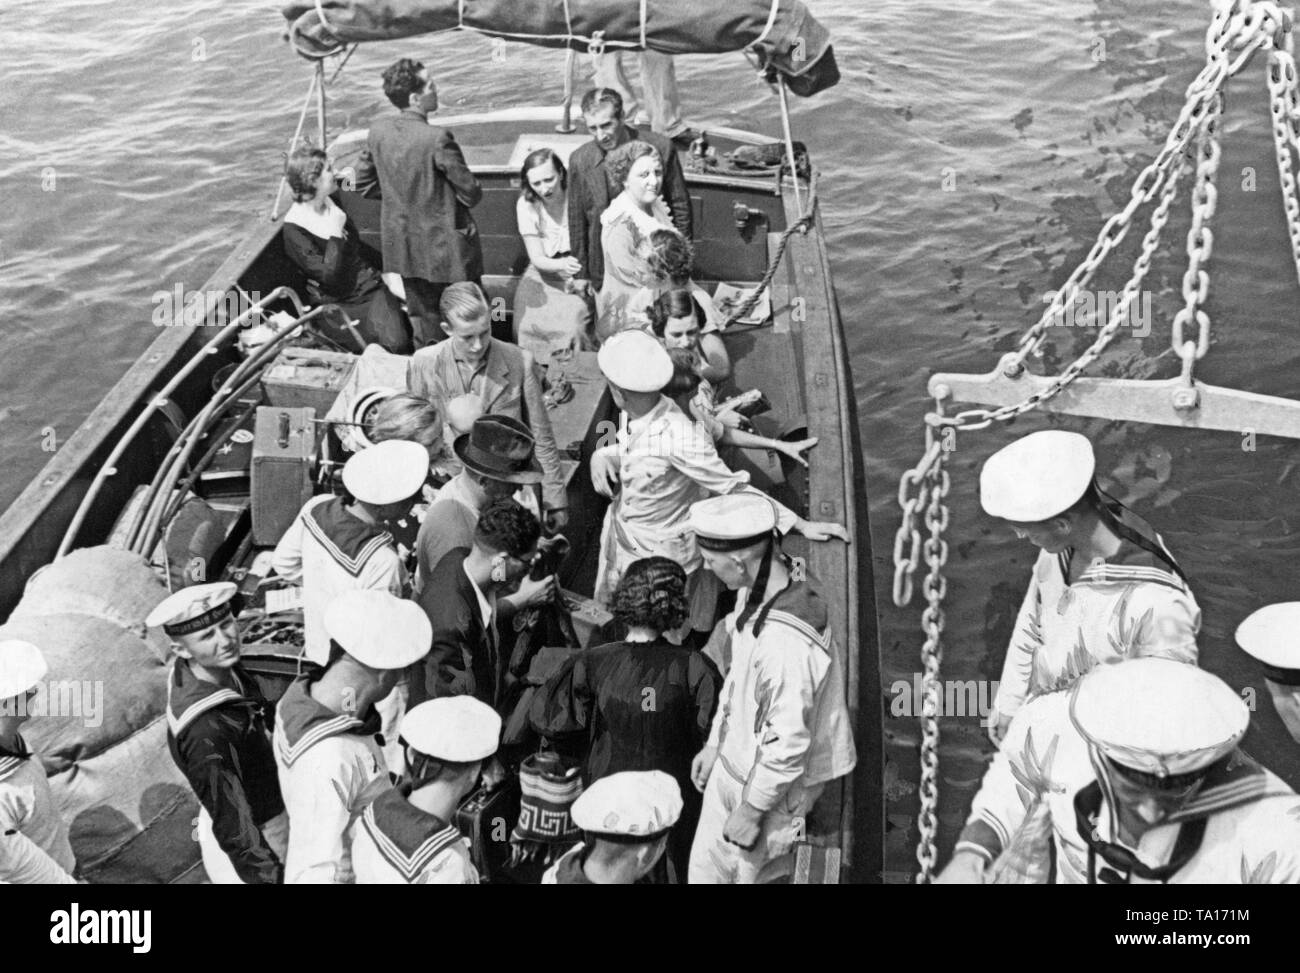 Photoof a group of German refugees during the Spanish Civil War in a dinghy of theheavy cruiser'Deutschland'at a roadsteadoff Valencia. A group of sailors and an officer help people come aboard 'Deutschland'. 'Deutschland'brought the refugees to Girona, where they were taken over by the steamer of the Nazi organization 'Kraft durch Freude' ('Strength through Joy'), Monte Sarmiento (launched in 1924, Monte-Klasse, sunk in 1942). - Stock Image